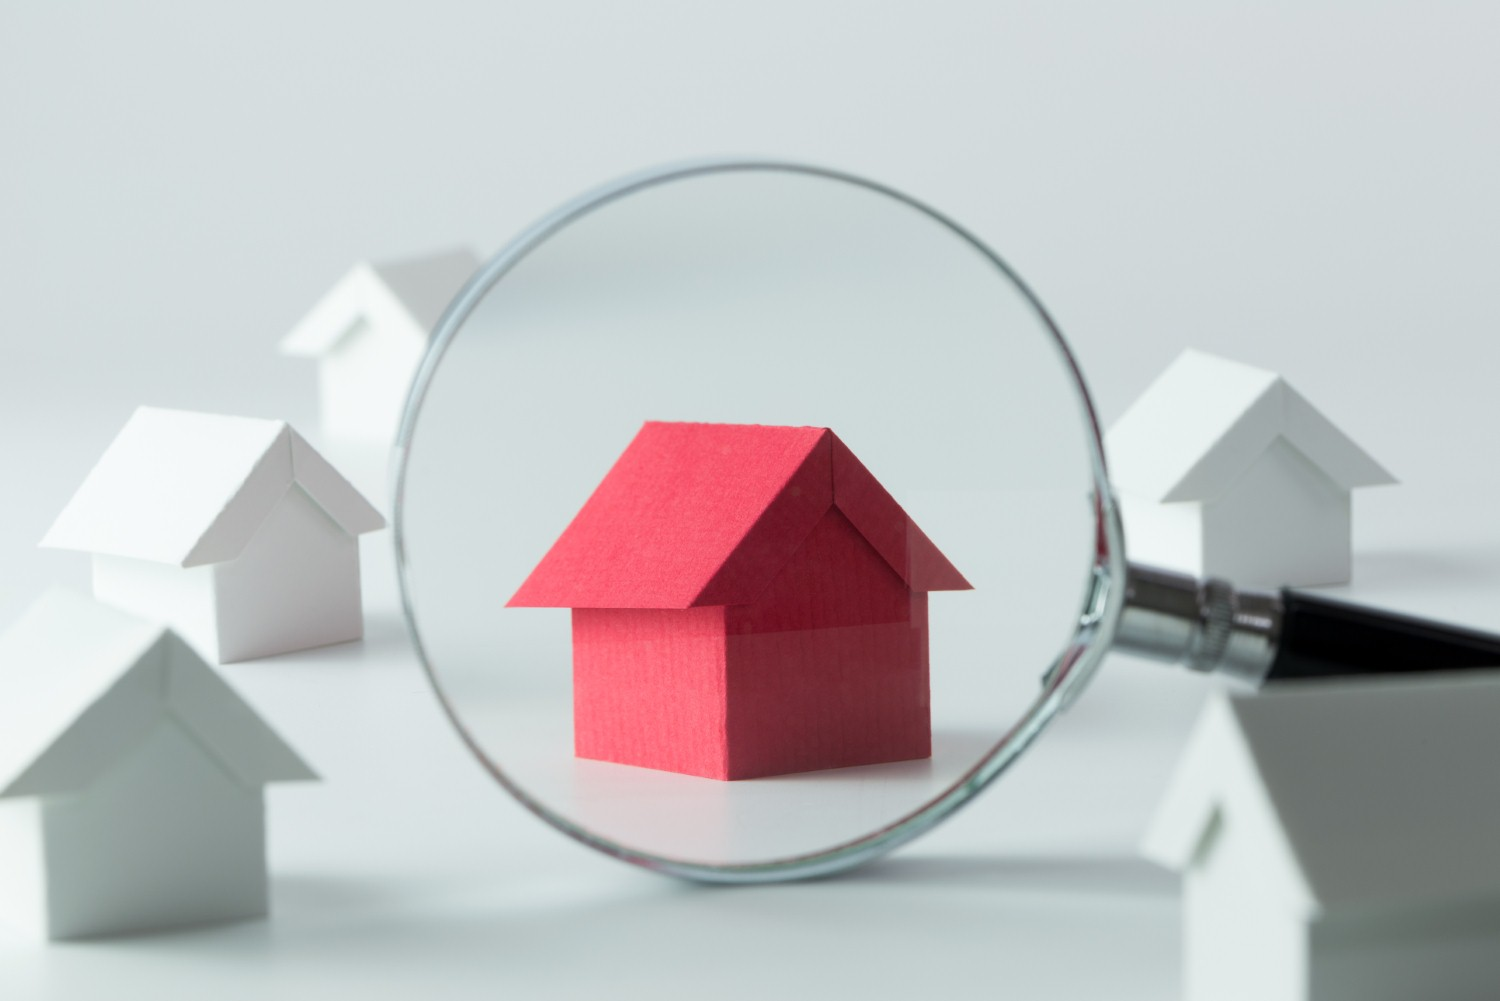 Relationships between UK landlords and tenants increasingly positive [Photo: iStock/Kenishirotie]